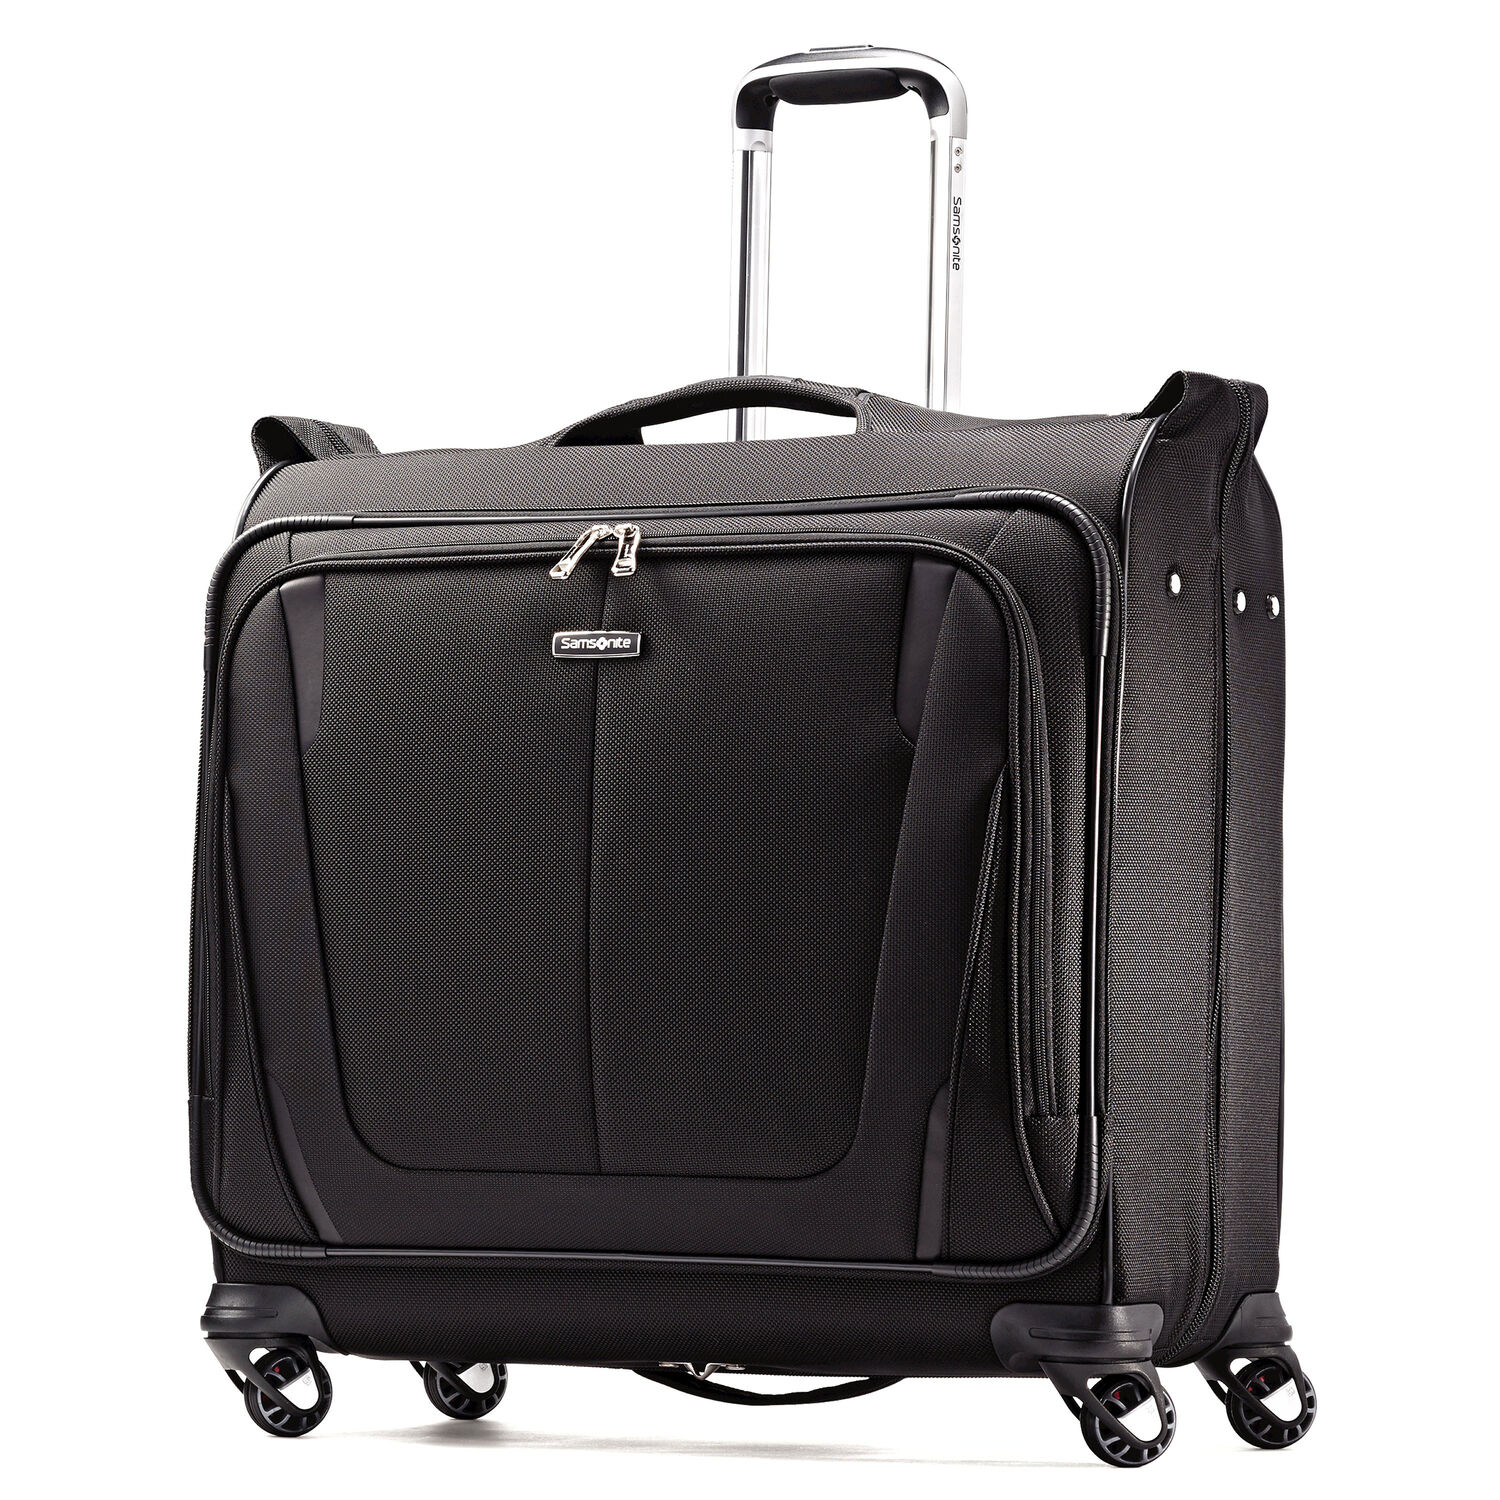 Samsonite Silhouette Sphere 2 Deluxe Voyager Garment Bag in the color Black. 6532cc3a7b419